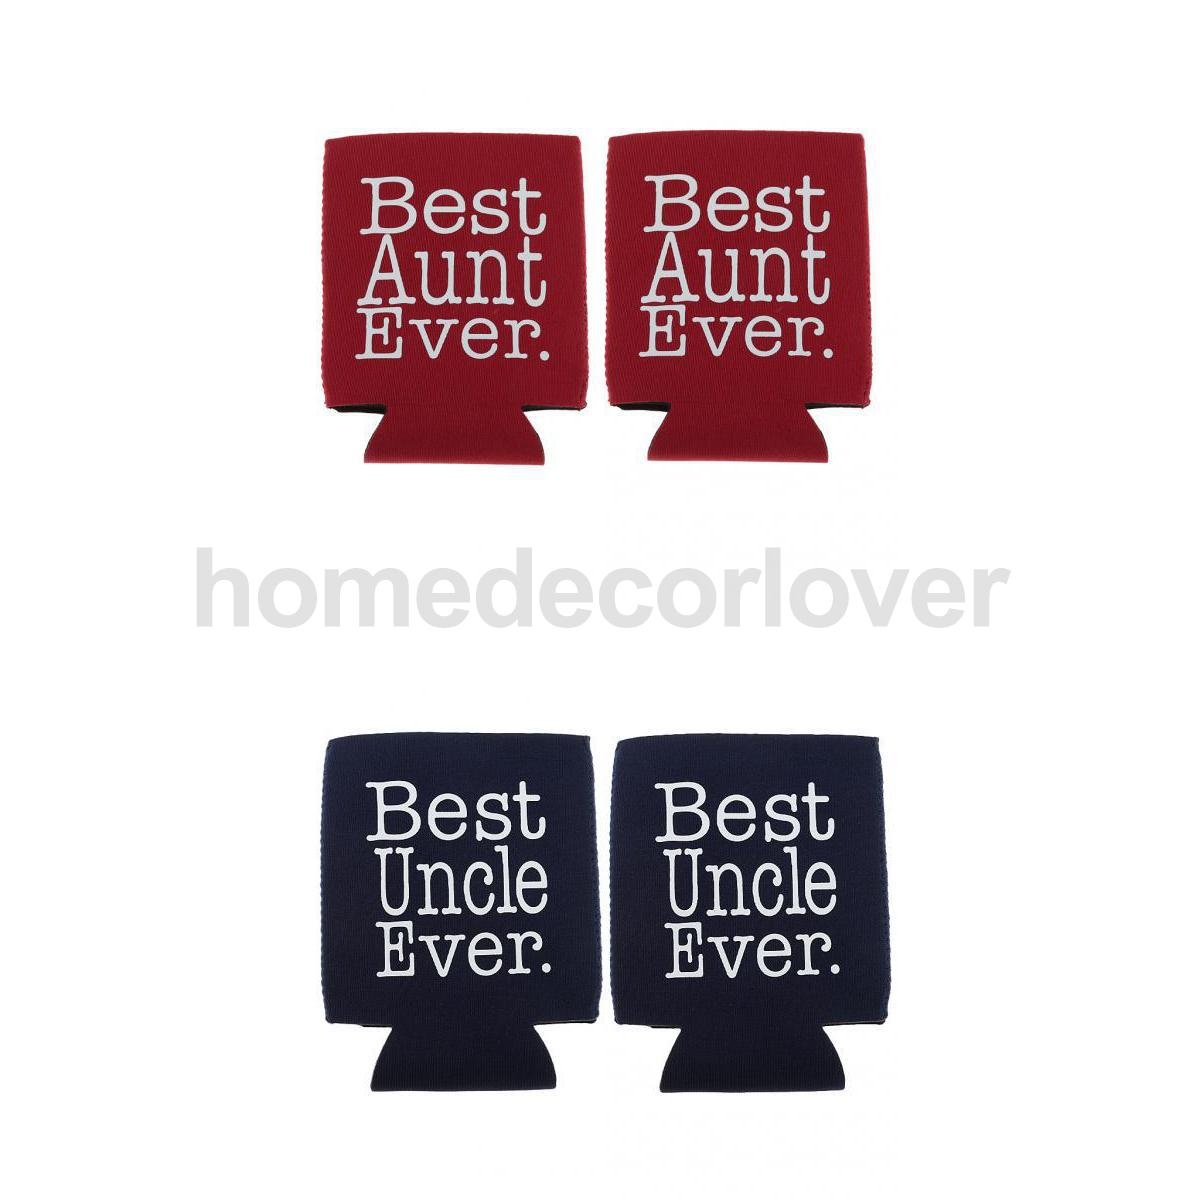 Us 434 21 Offfunny Best Aunt Ever 2pcs Best Uncle Ever 2pcs Beer Bottle Can Cooler Holder Birthday Gift In Party Diy Decorations From Home